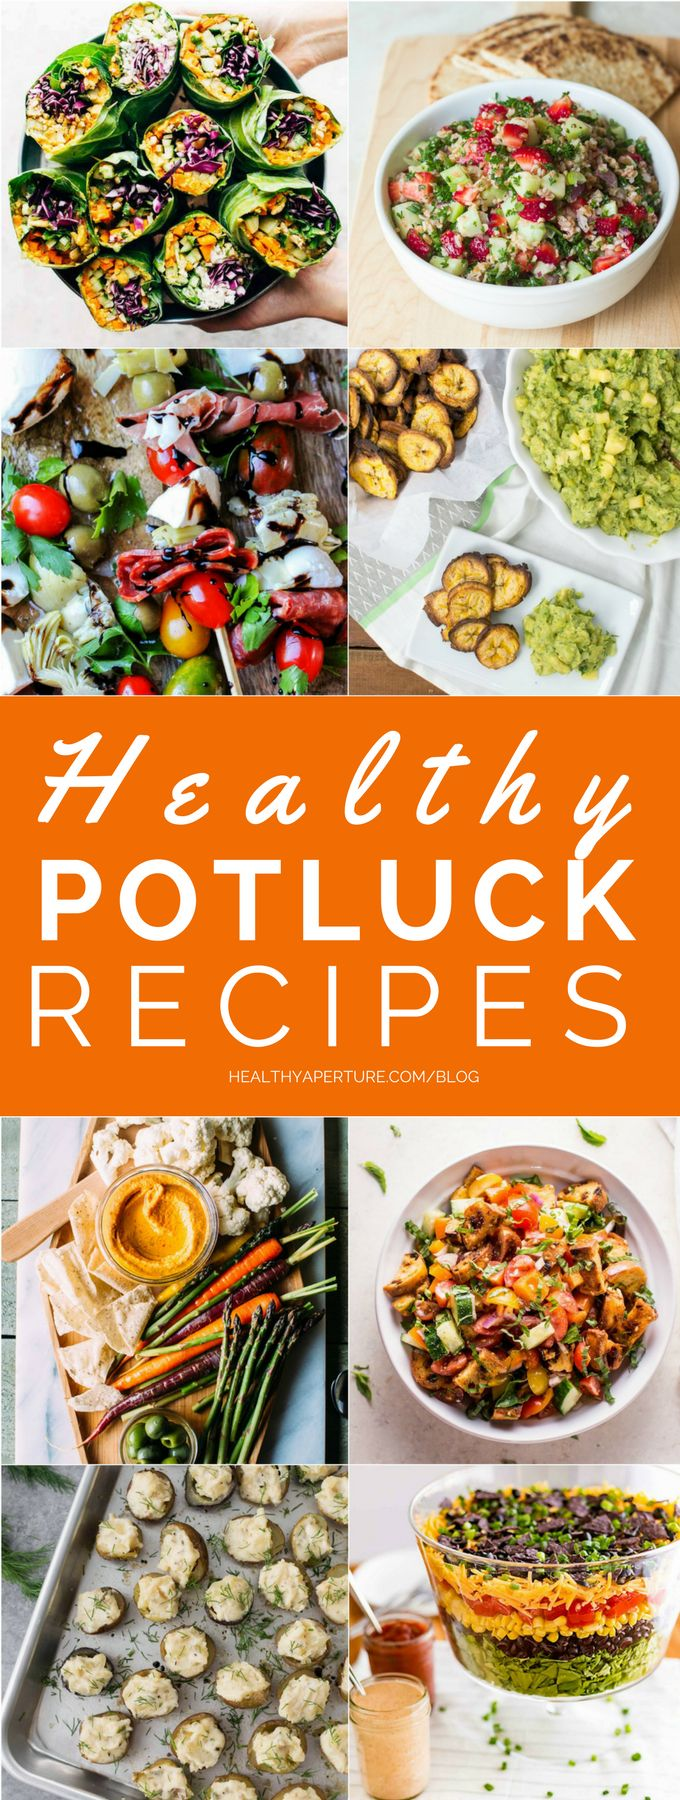 These Healthy Potluck Recipes are perfect for summer! Make one for your next bbq, pool party or family gathering.